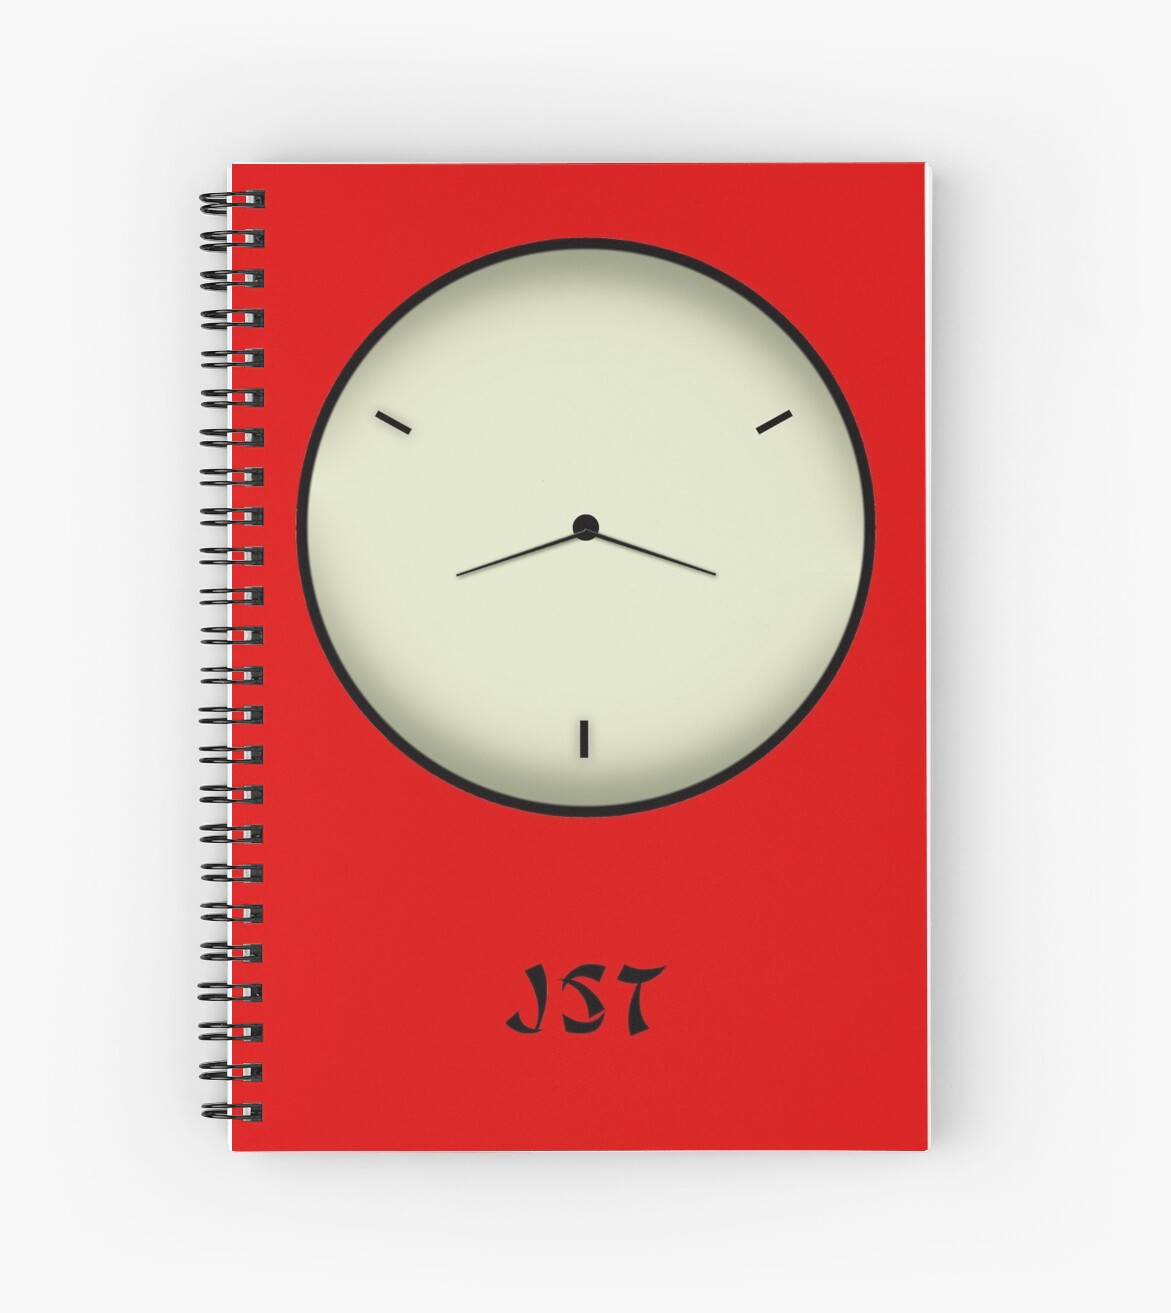 Japan Standard Time JST Clock by Denis Marsili